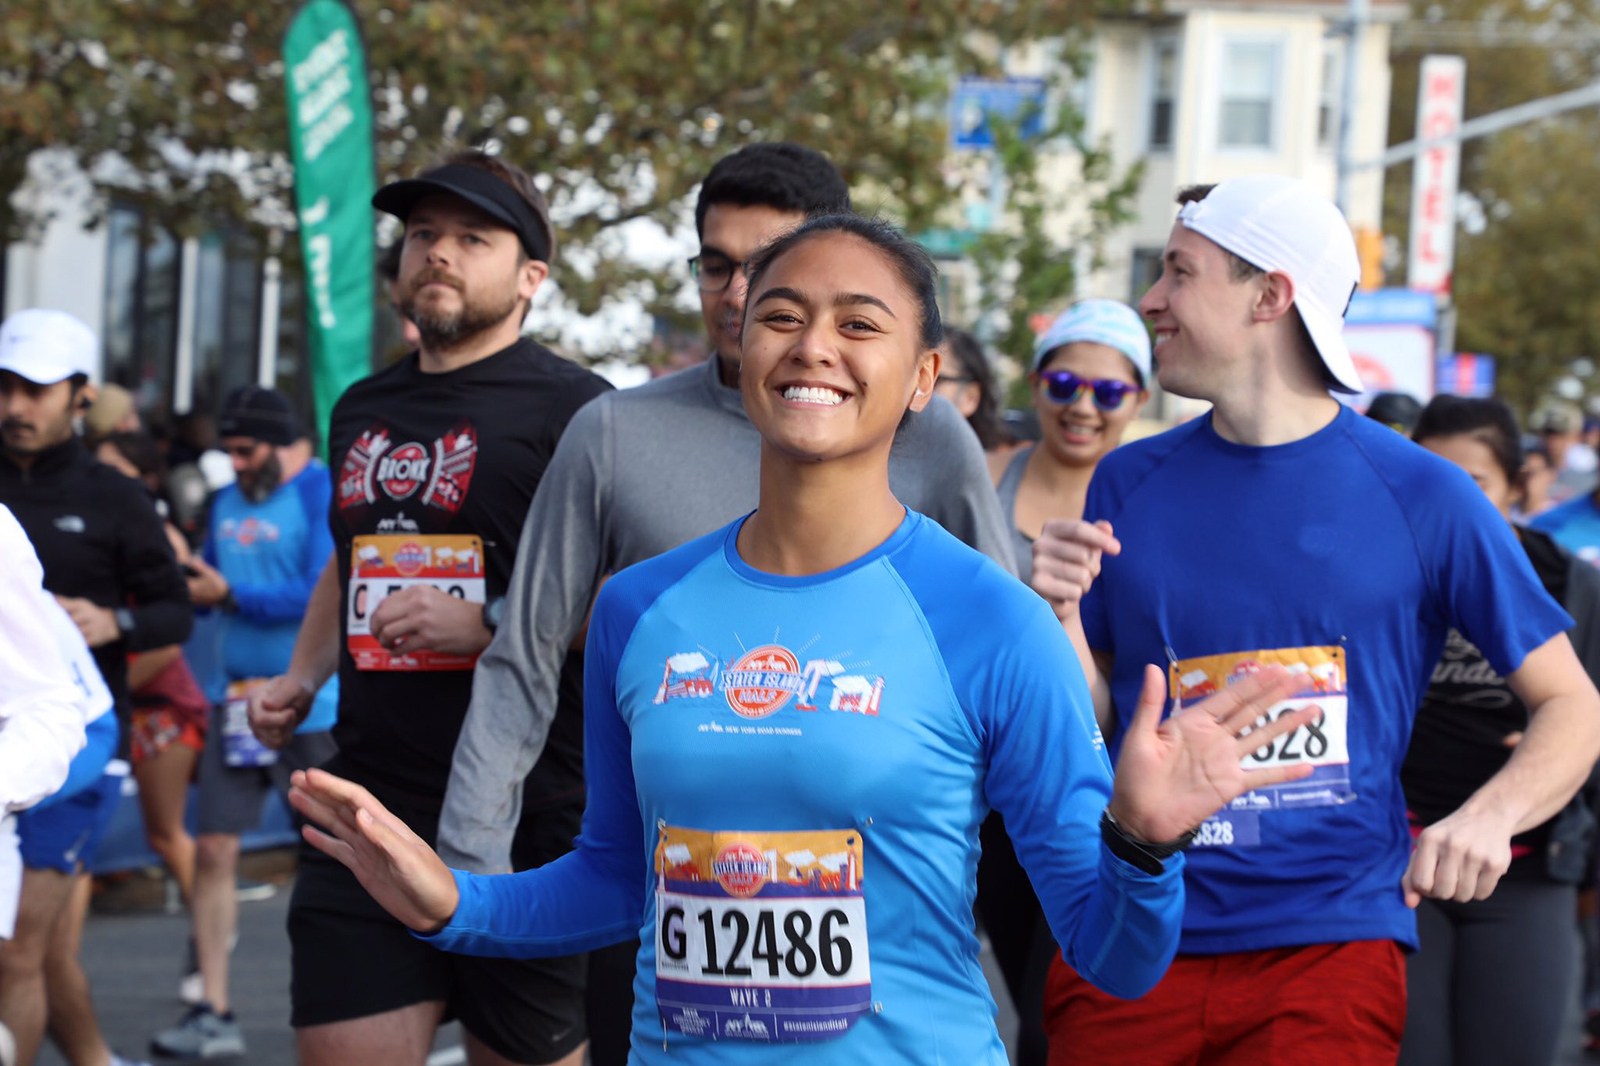 Smiles all around at the 2019 NYRR Staten Island Half